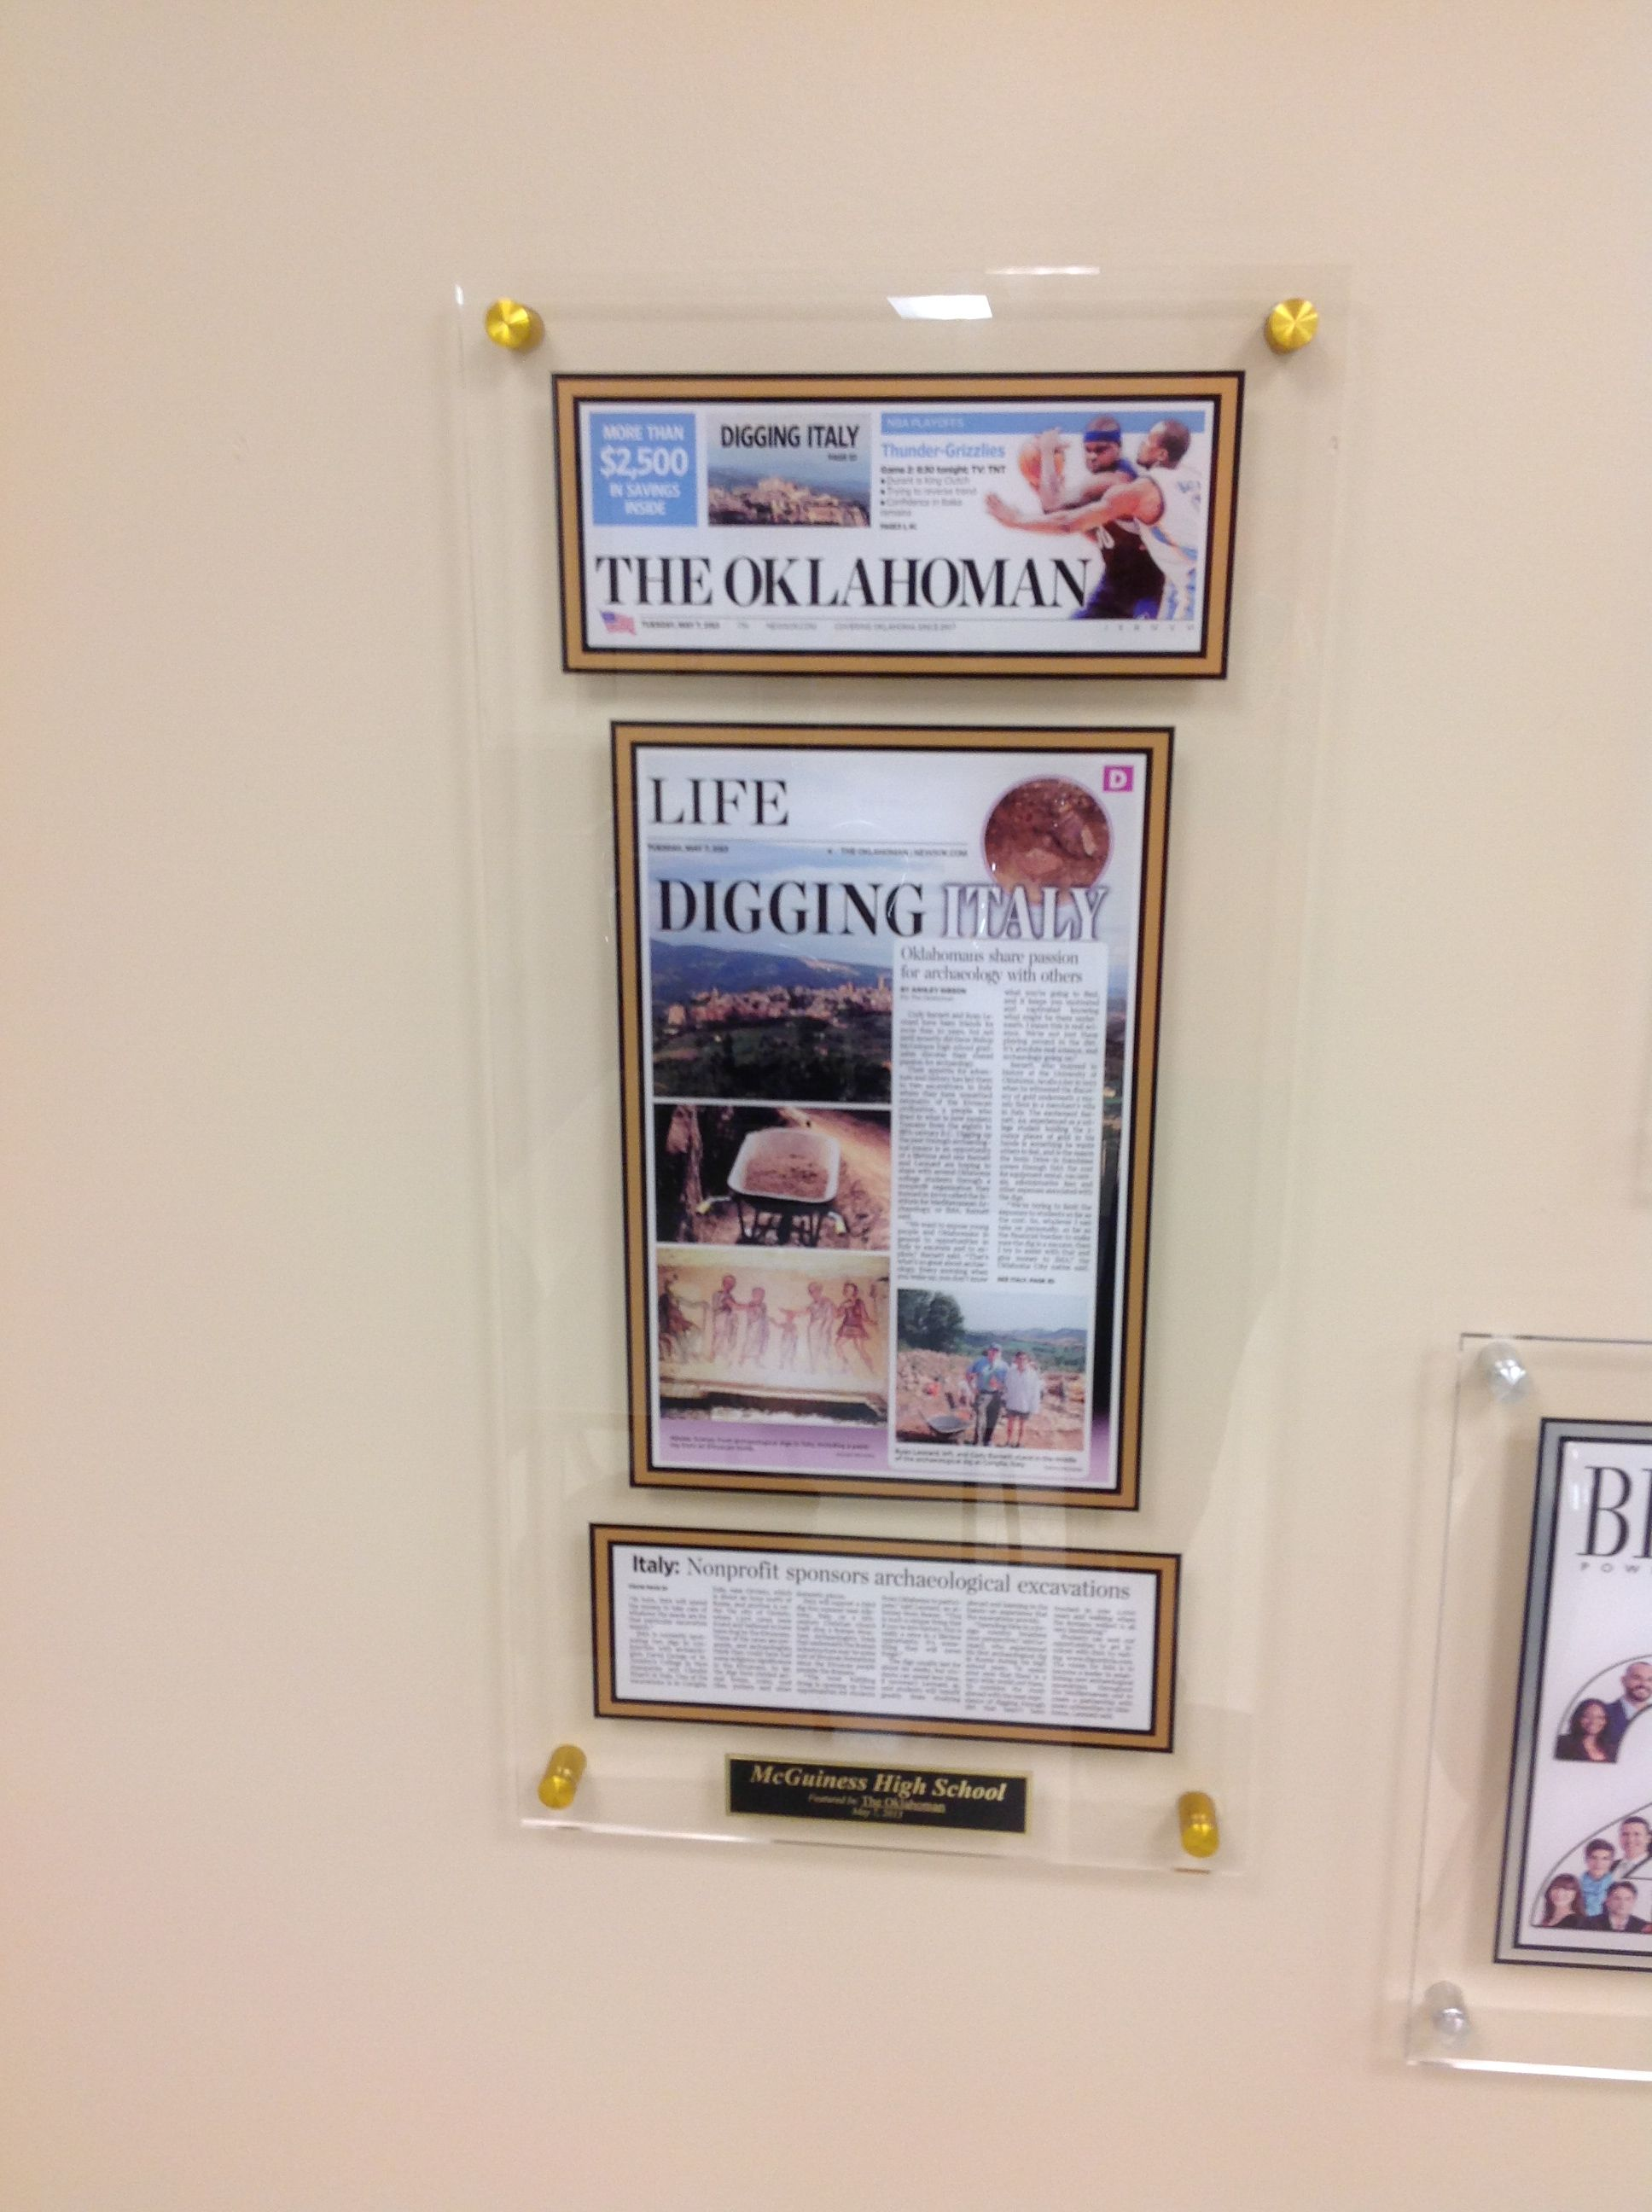 Framing A Newspaper Article With An Acrylic Style Plaque For